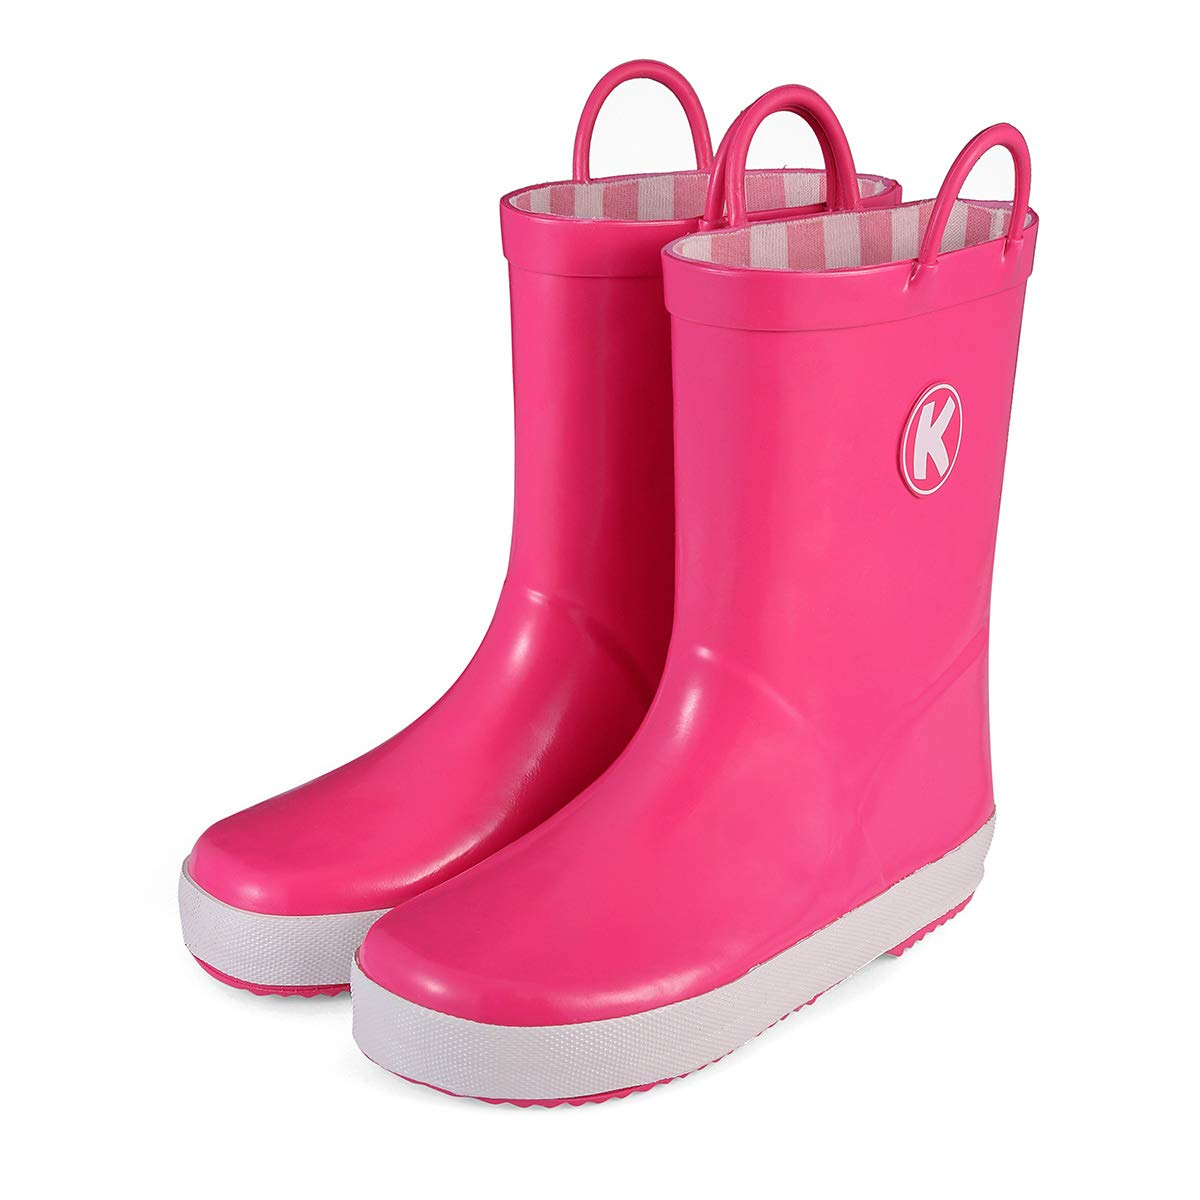 KomForme Kids Rain Boots, Plain Color Girl Rubber Boots Waterproof with Handles Pink by KomForme (Image #1)